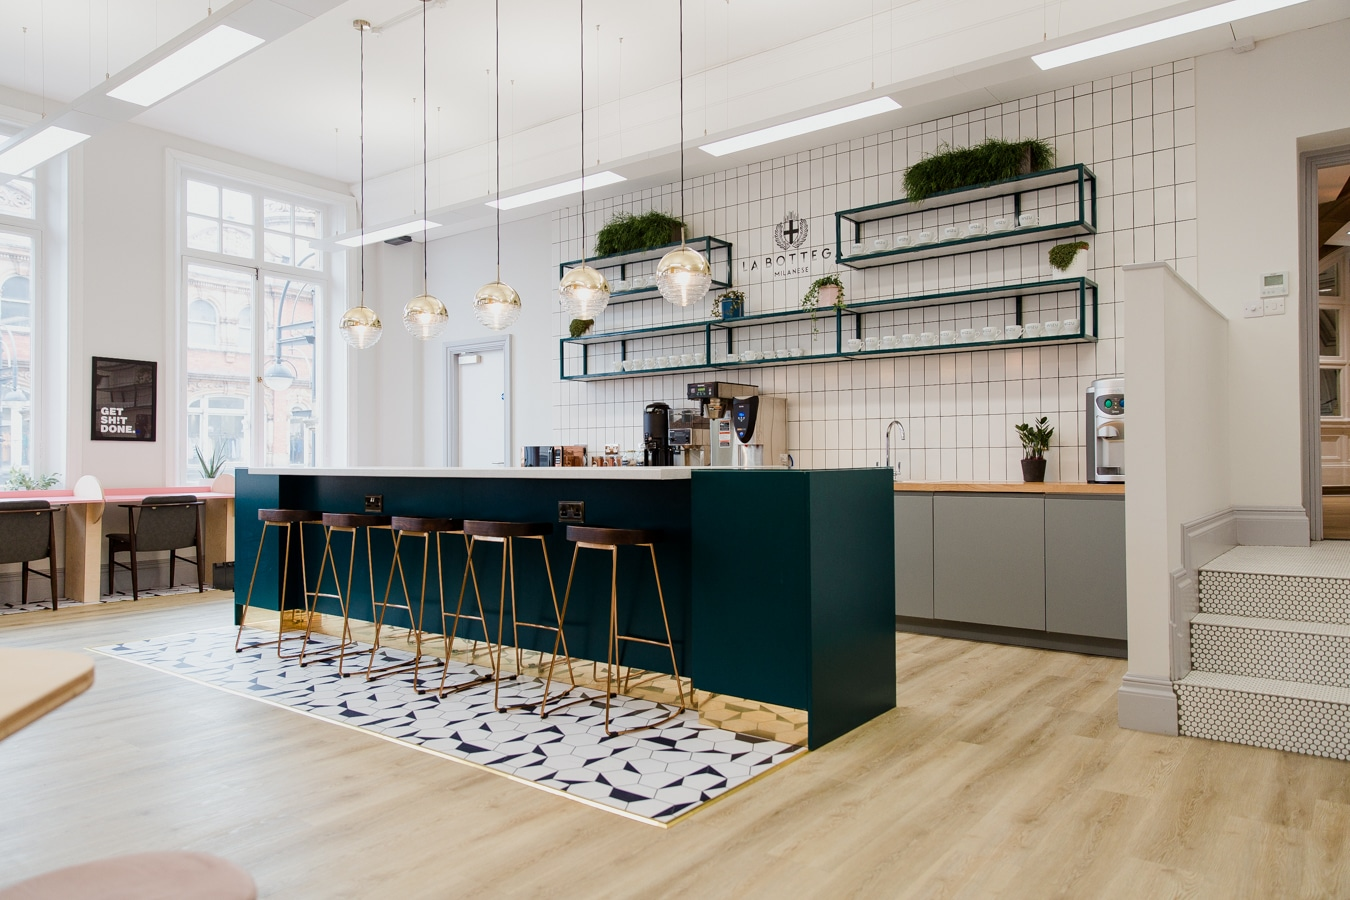 New Co-working offers in Leeds